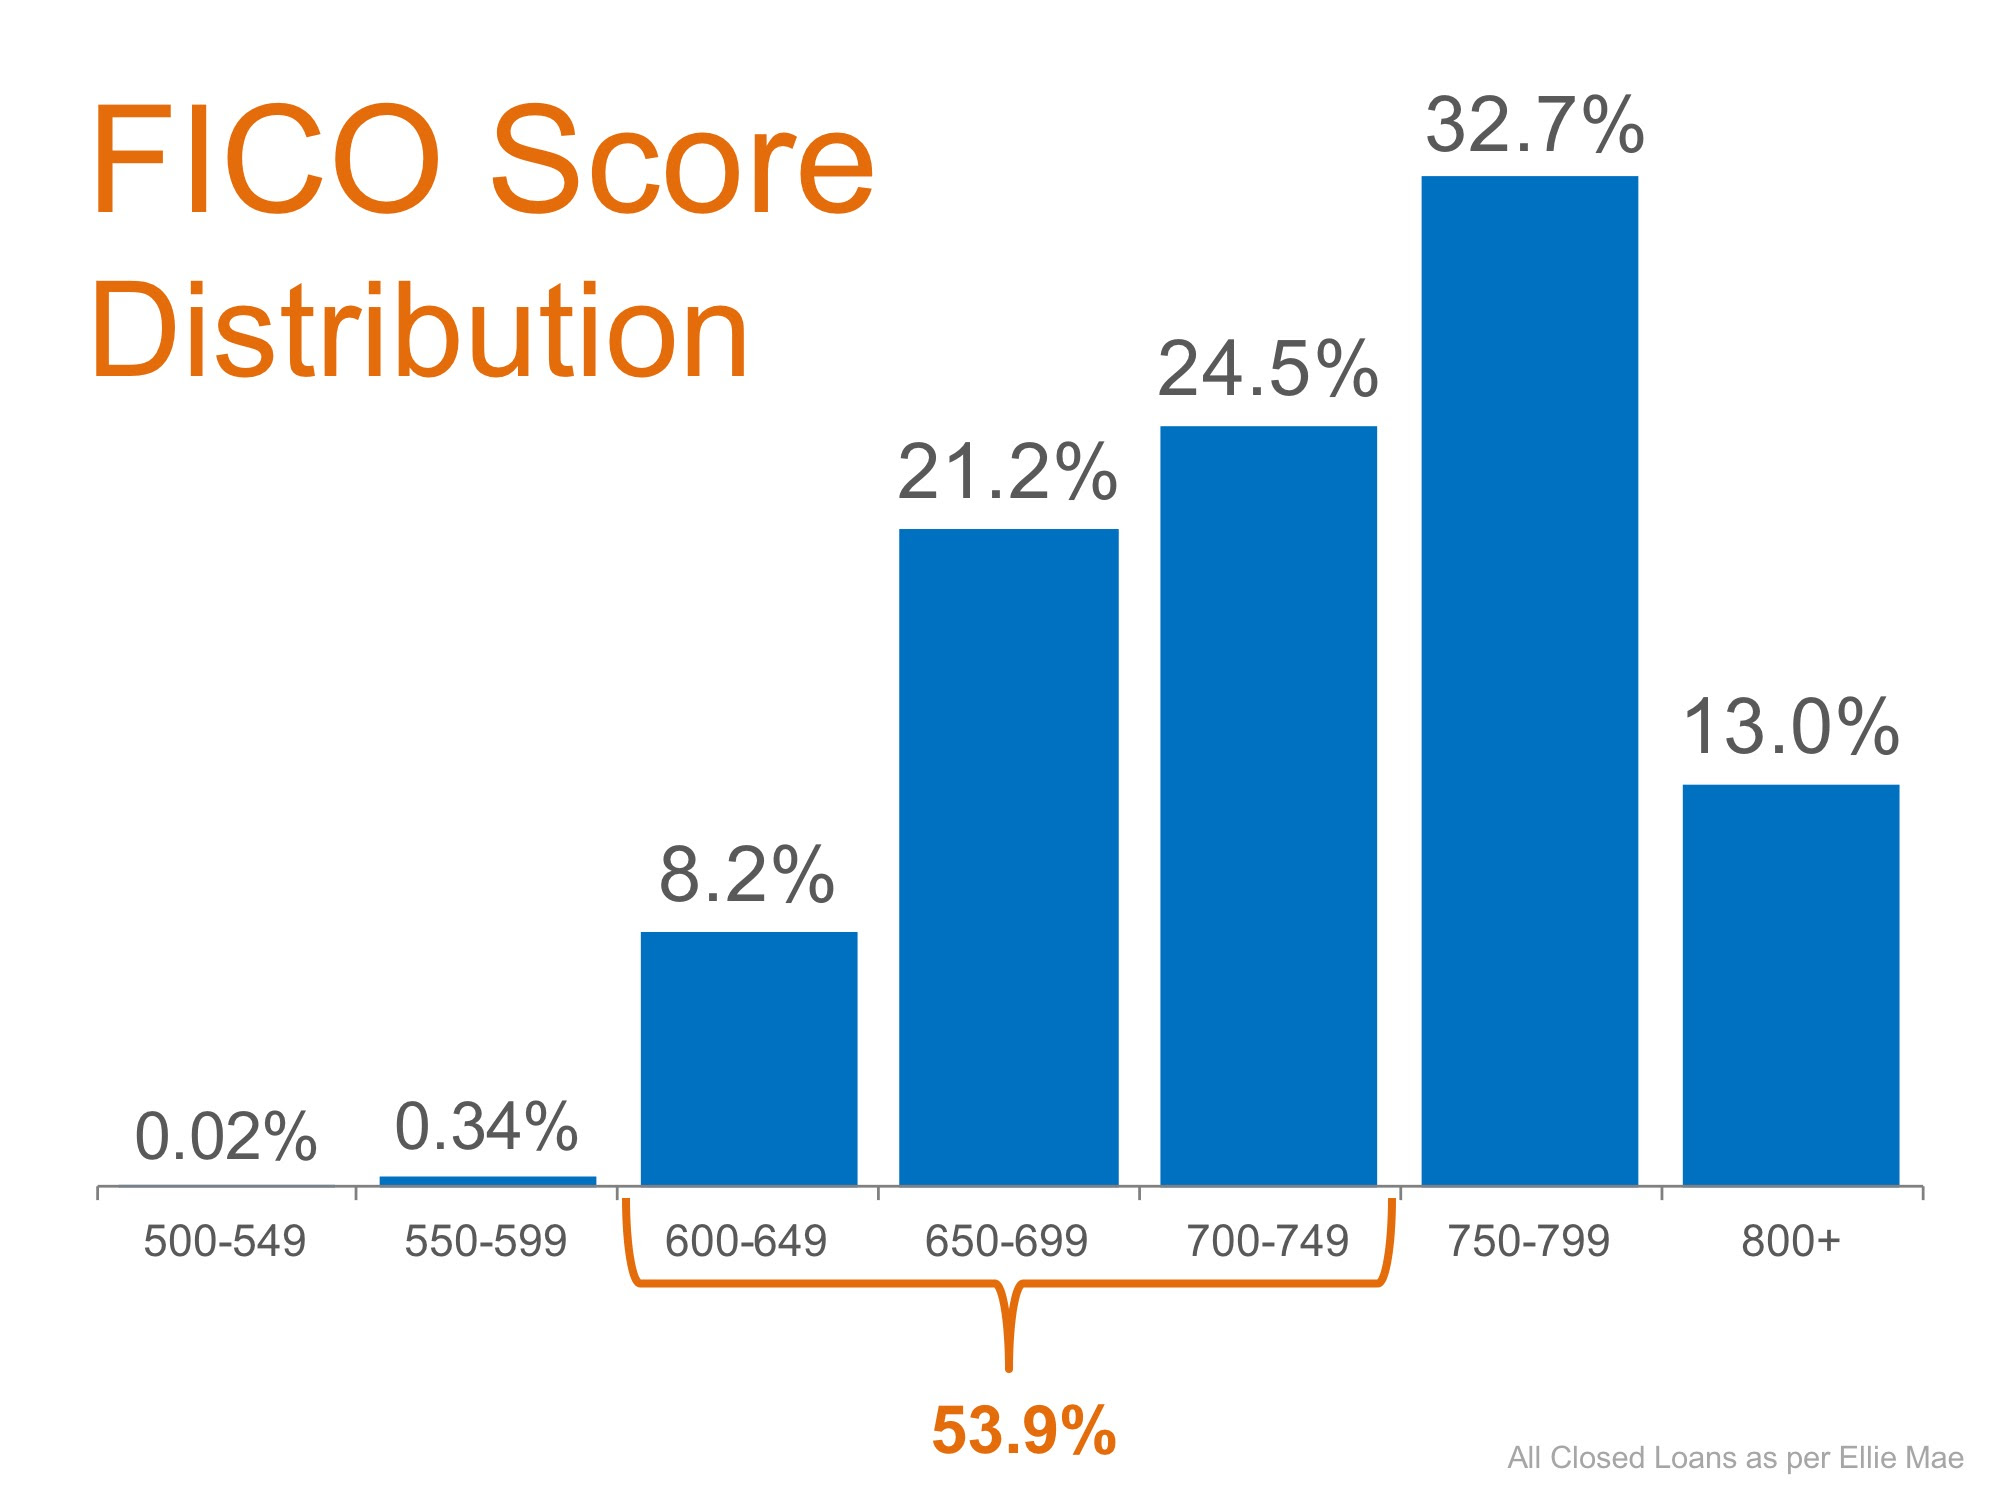 Don't Disqualify Yourself... Over Half of All Loans Approved Have a FICO Score Under 750 | MyKCM